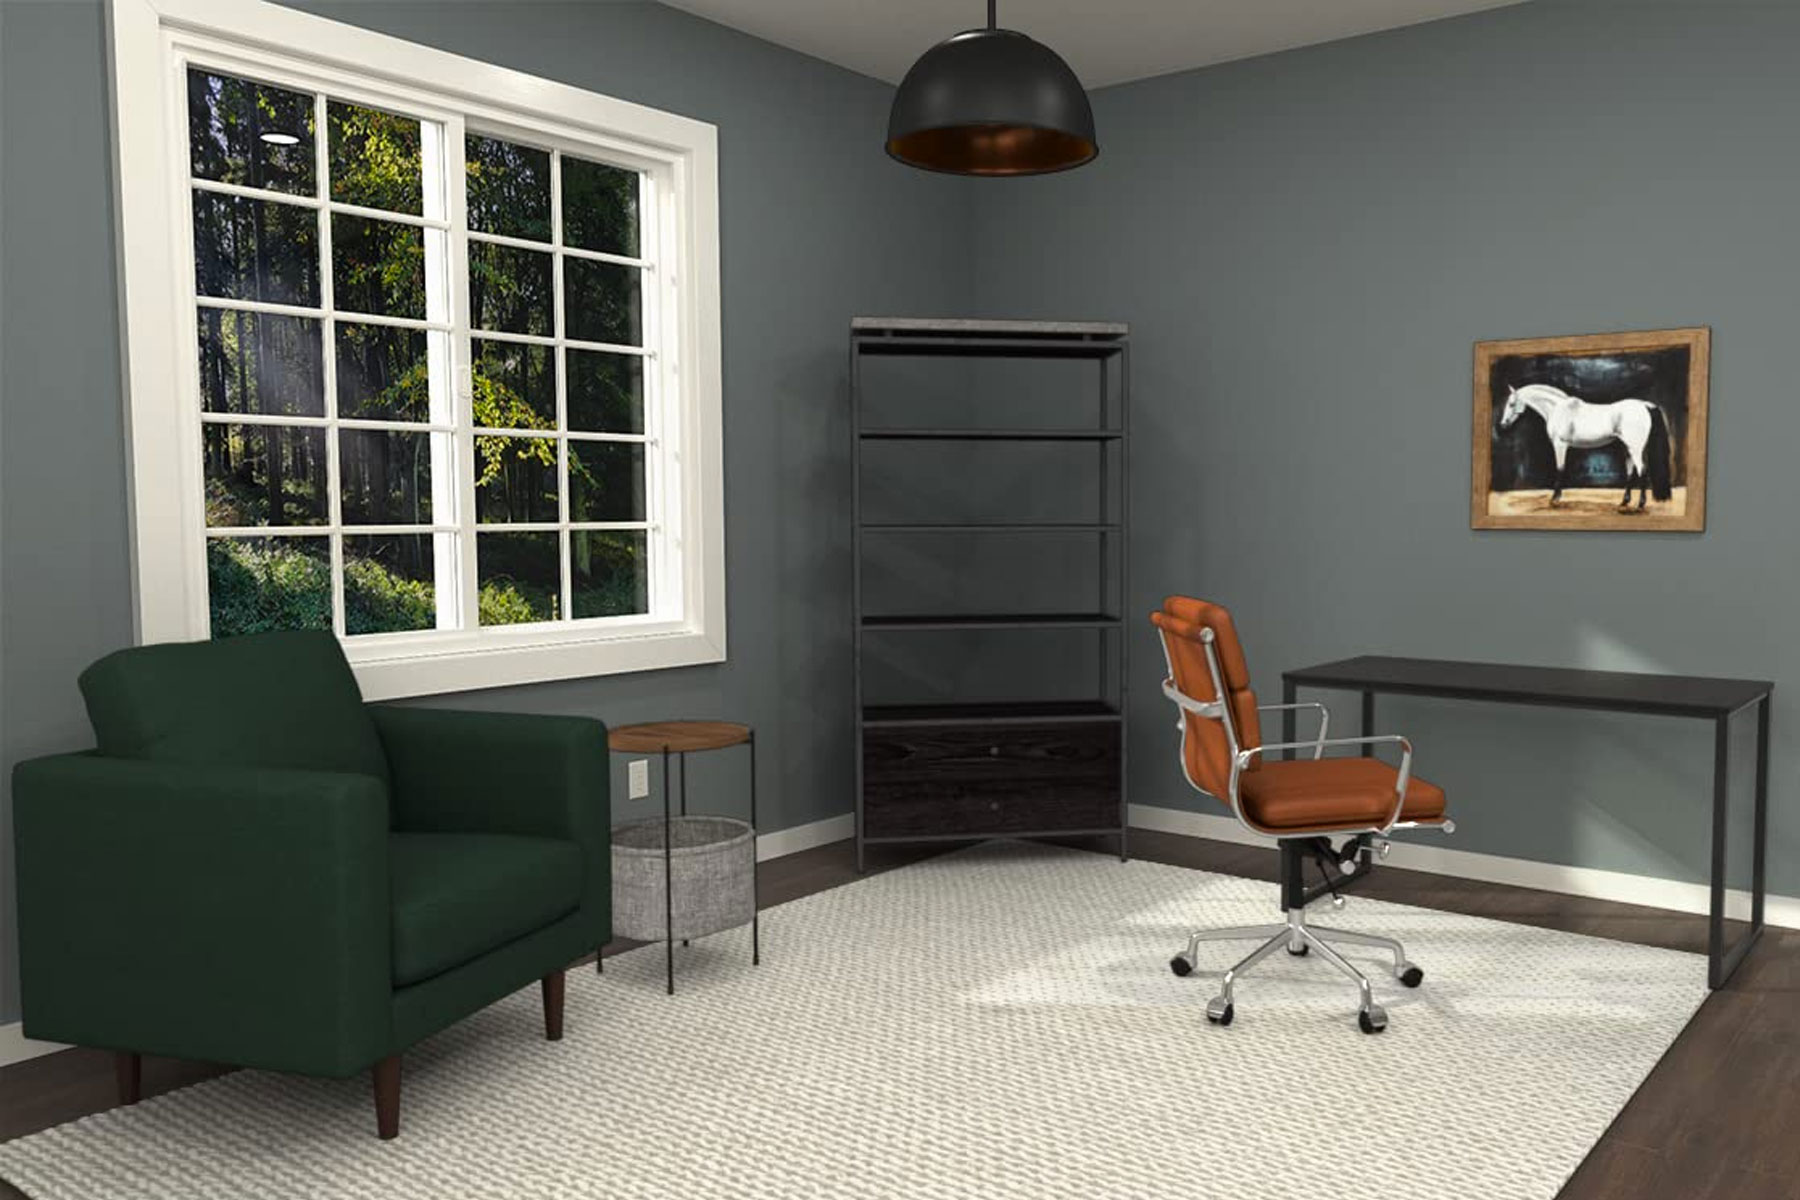 Home office with desk, desk chair, accent chair, shelves